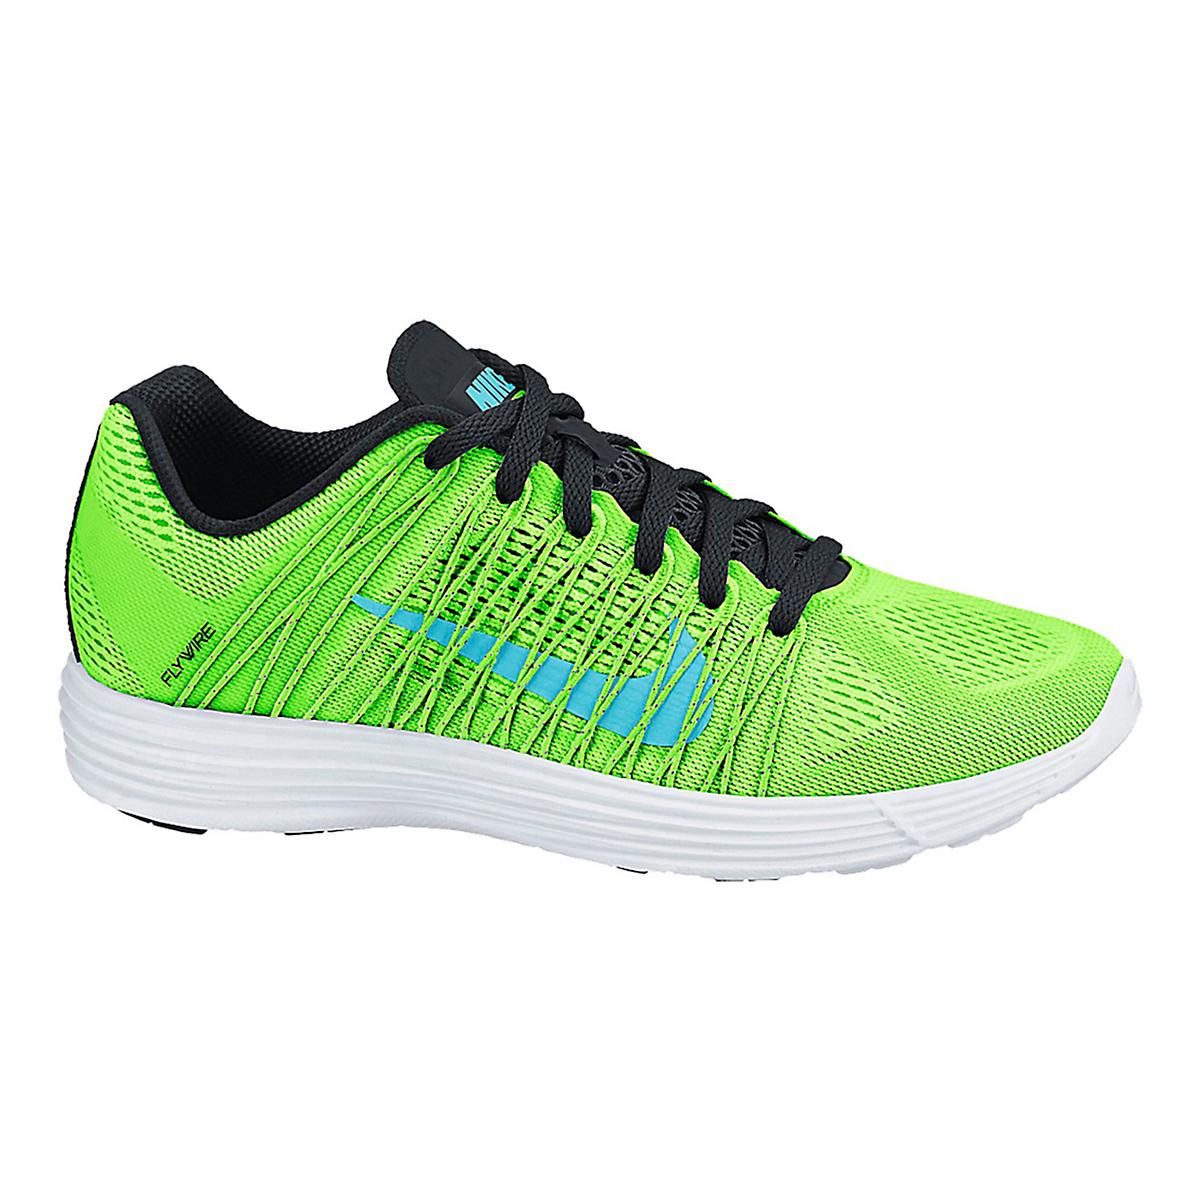 59710c84a29562 Womens Nike LunaRacer+ 3 Racing Shoe at Road Runner Sports